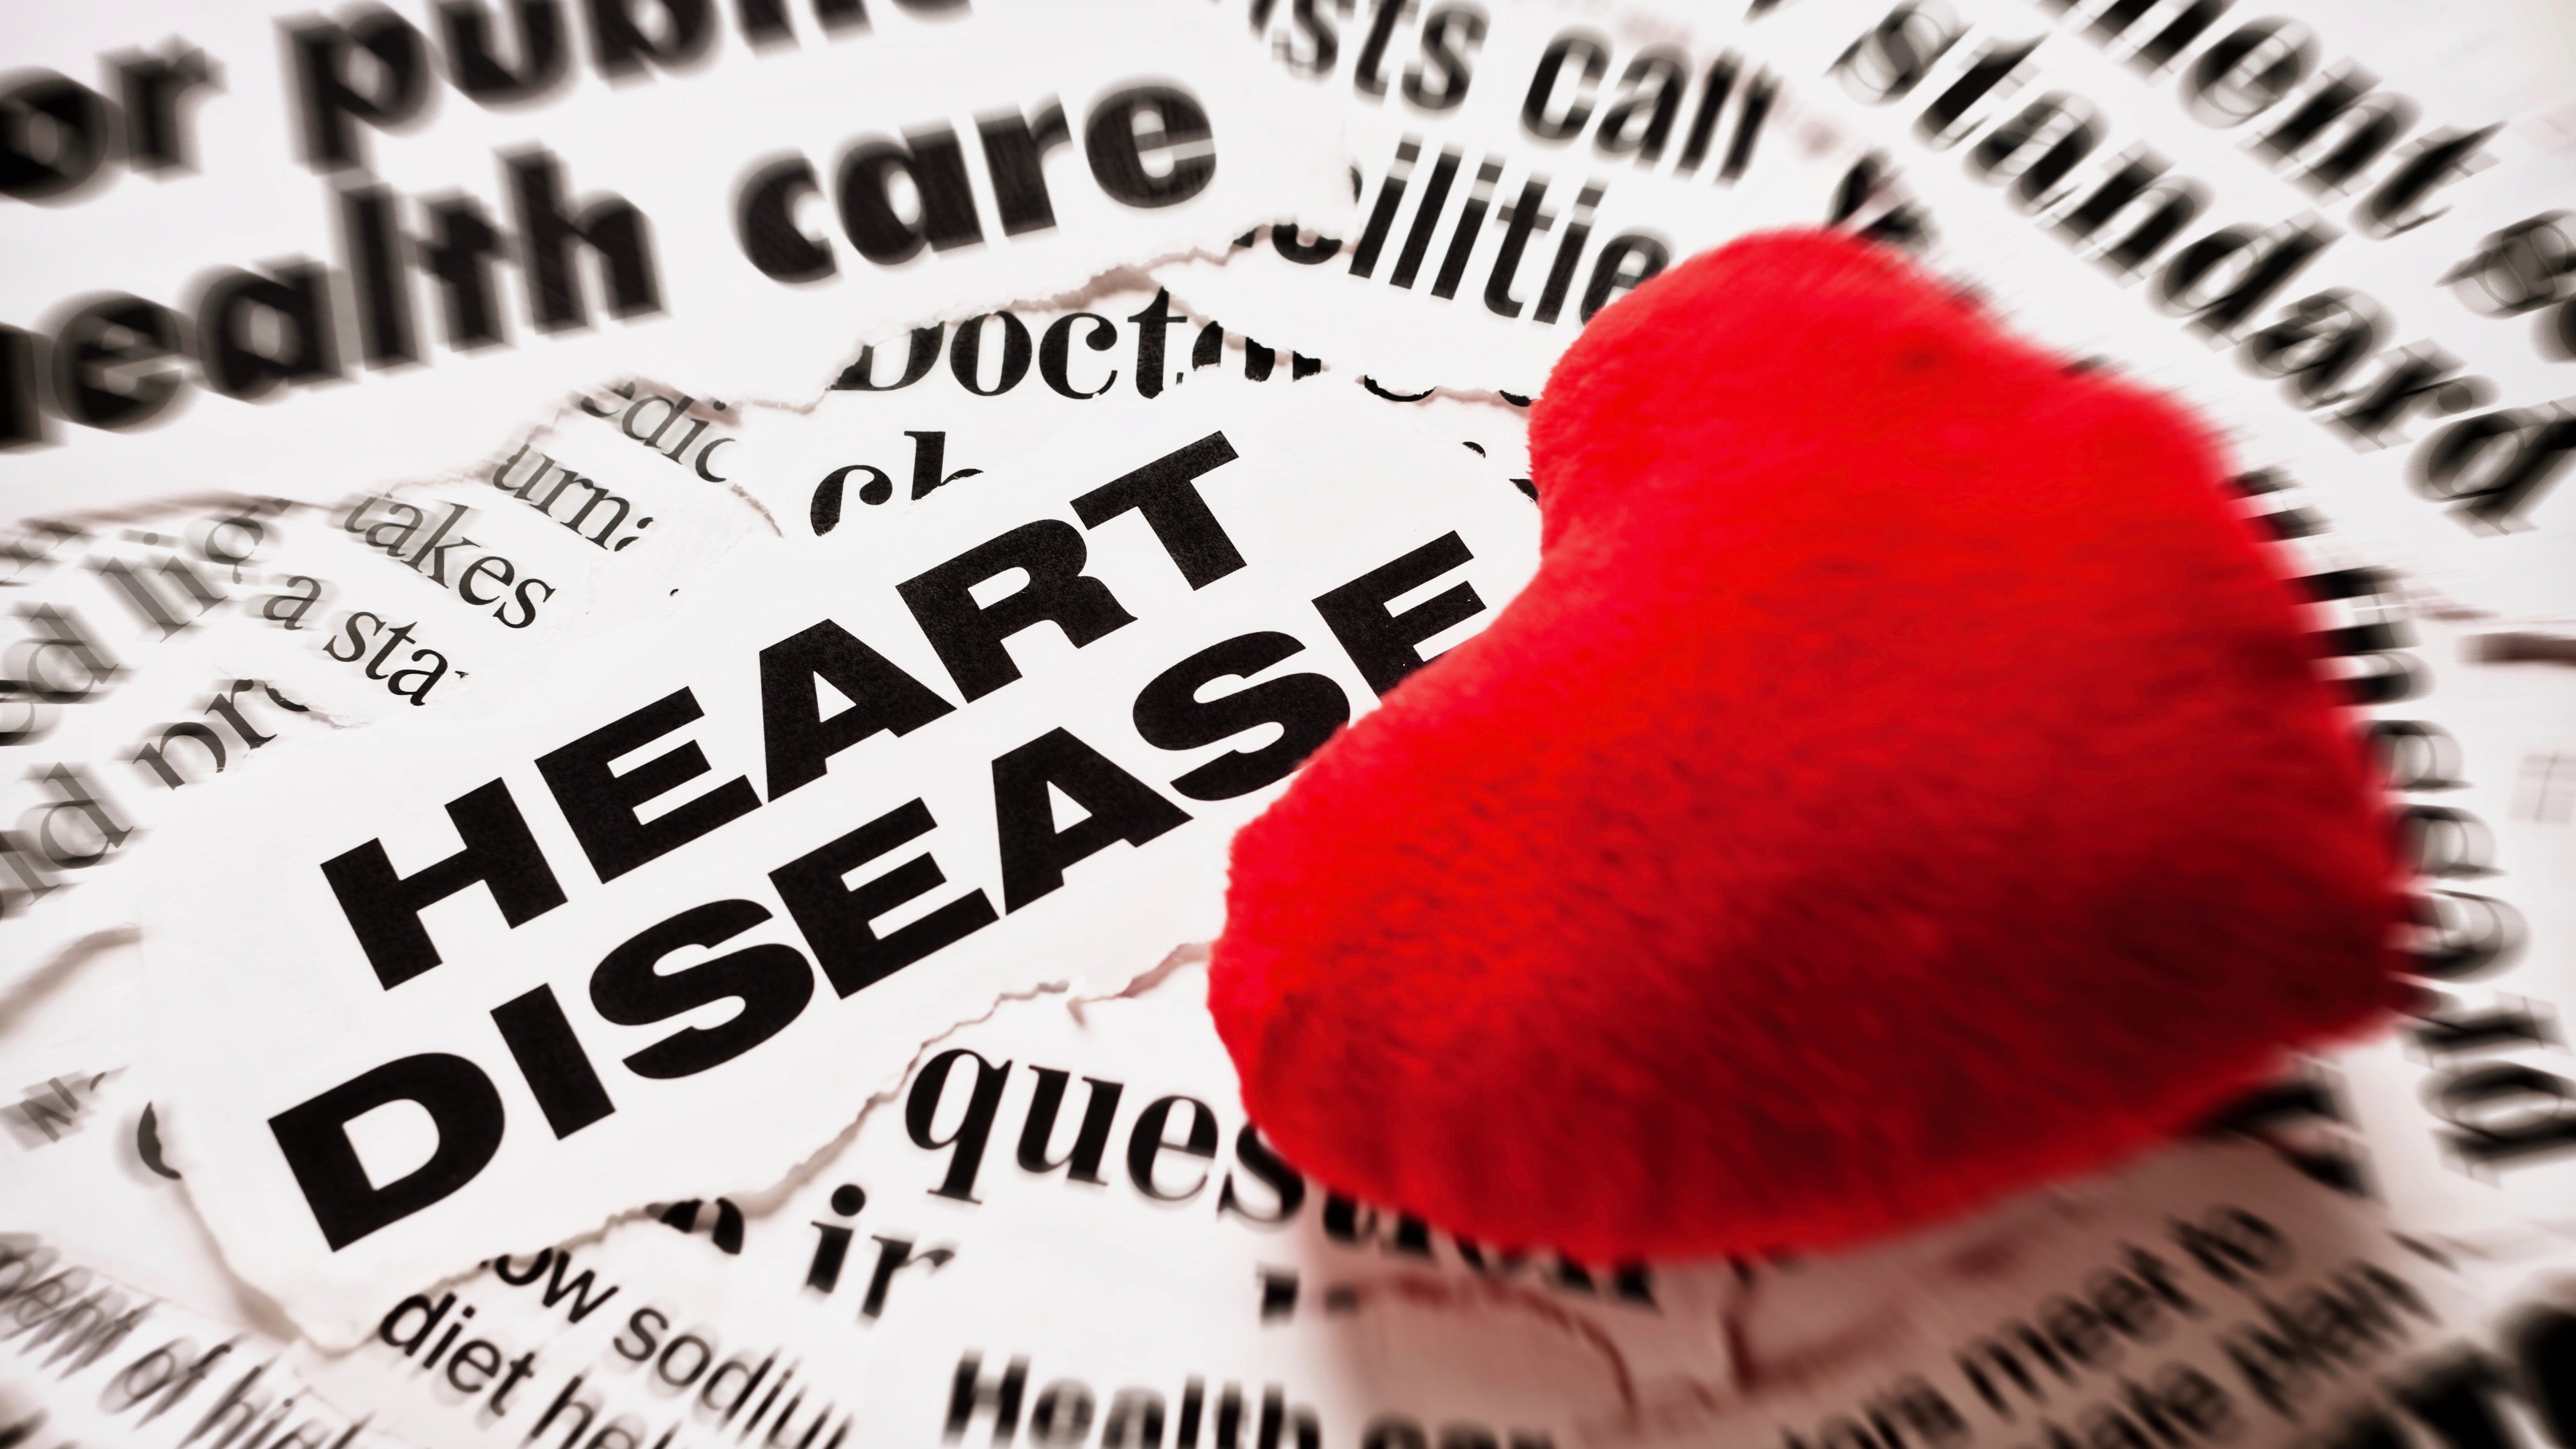 Heart disease burden on the rise